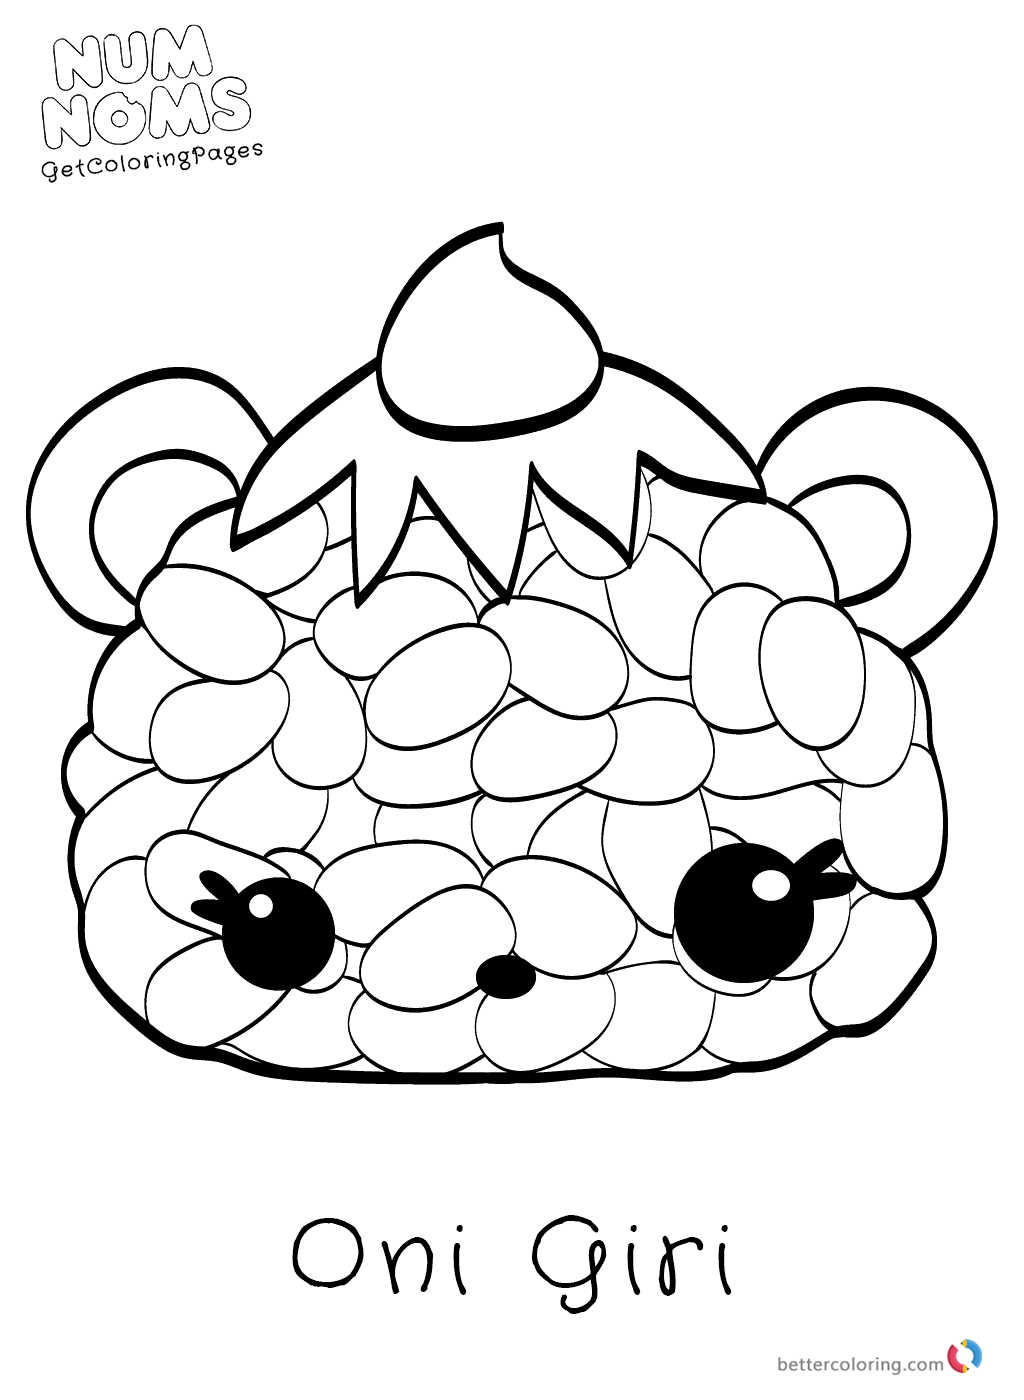 num noms coloring pages free - free num noms coloring pages free printable coloring pages